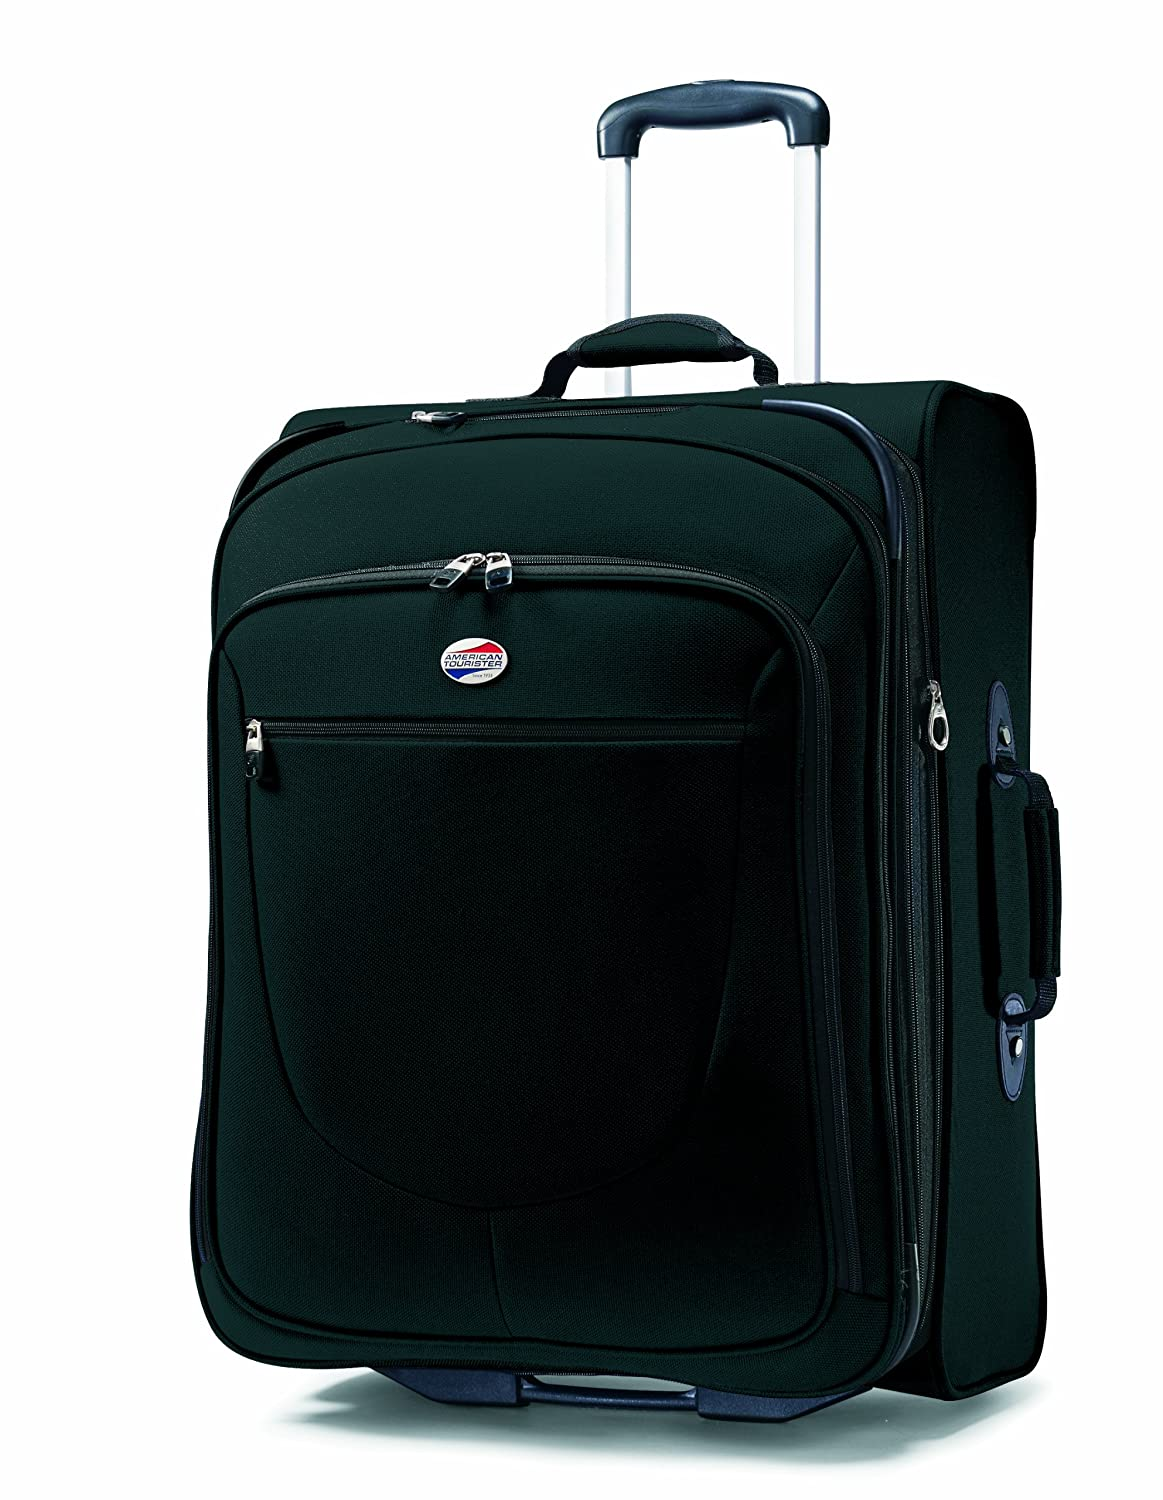 Target carry on luggage sale edmonton, luggage discount ...